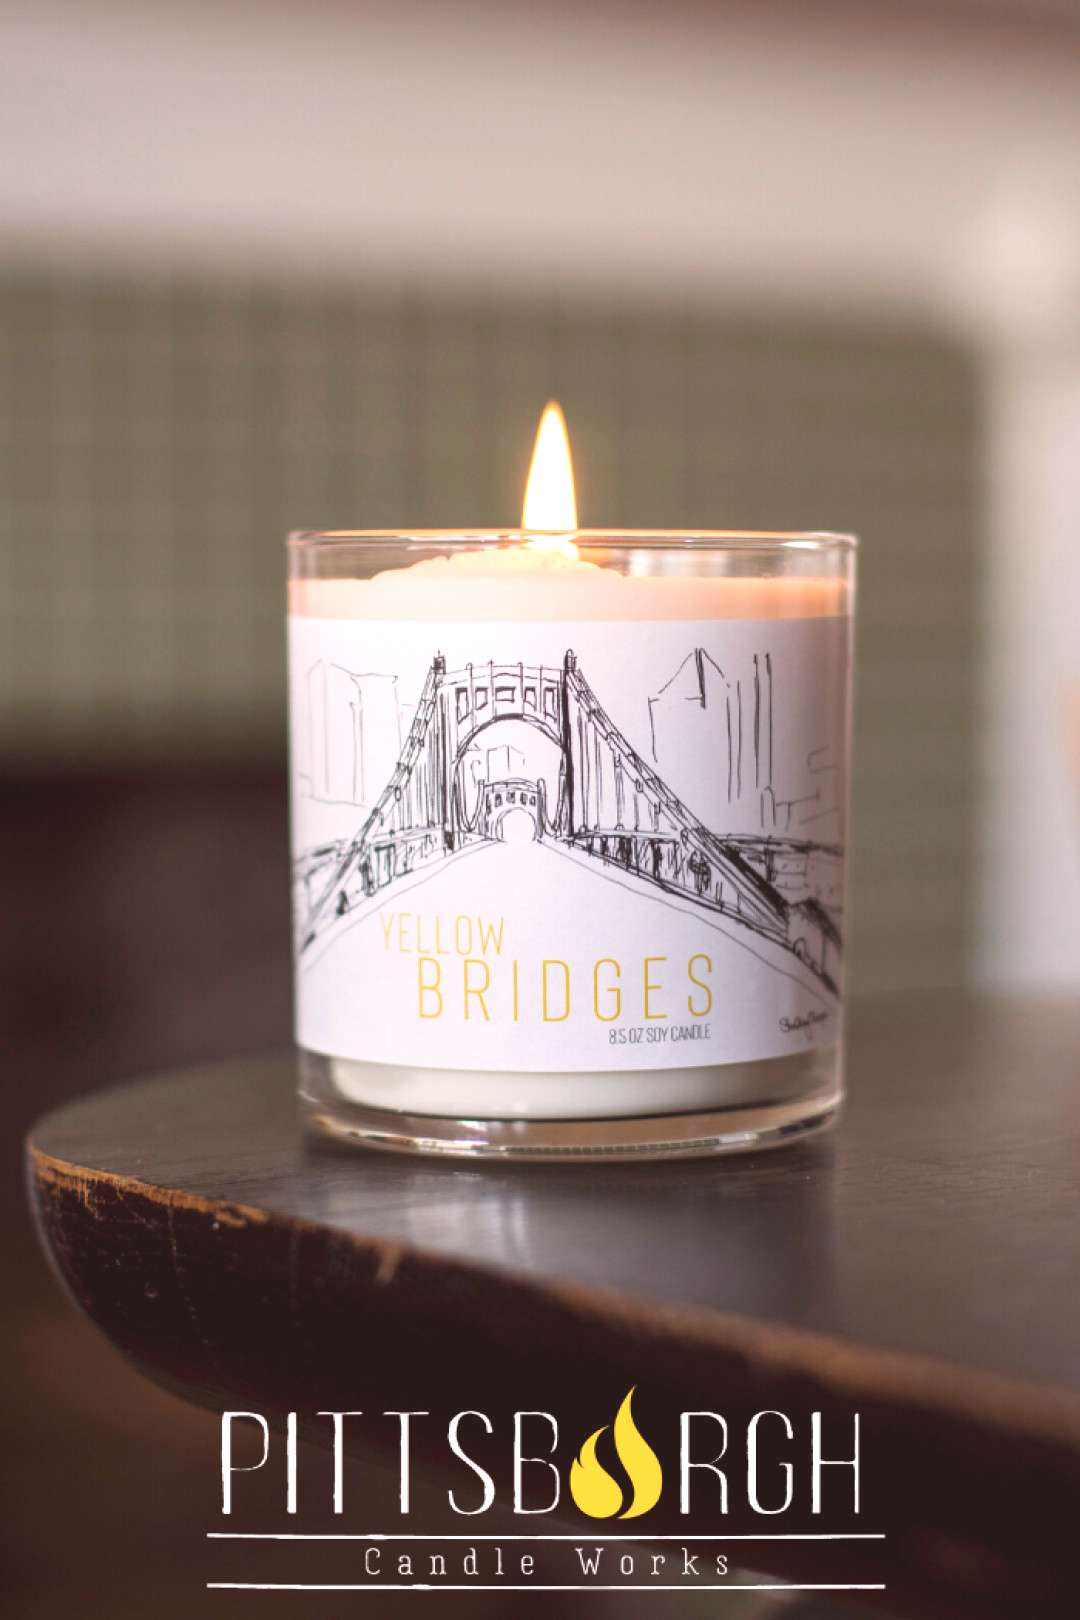 Handmade in Pittsburgh - Soy Candles Gift Ideas With more than 400 bridges in this handmade soy ca